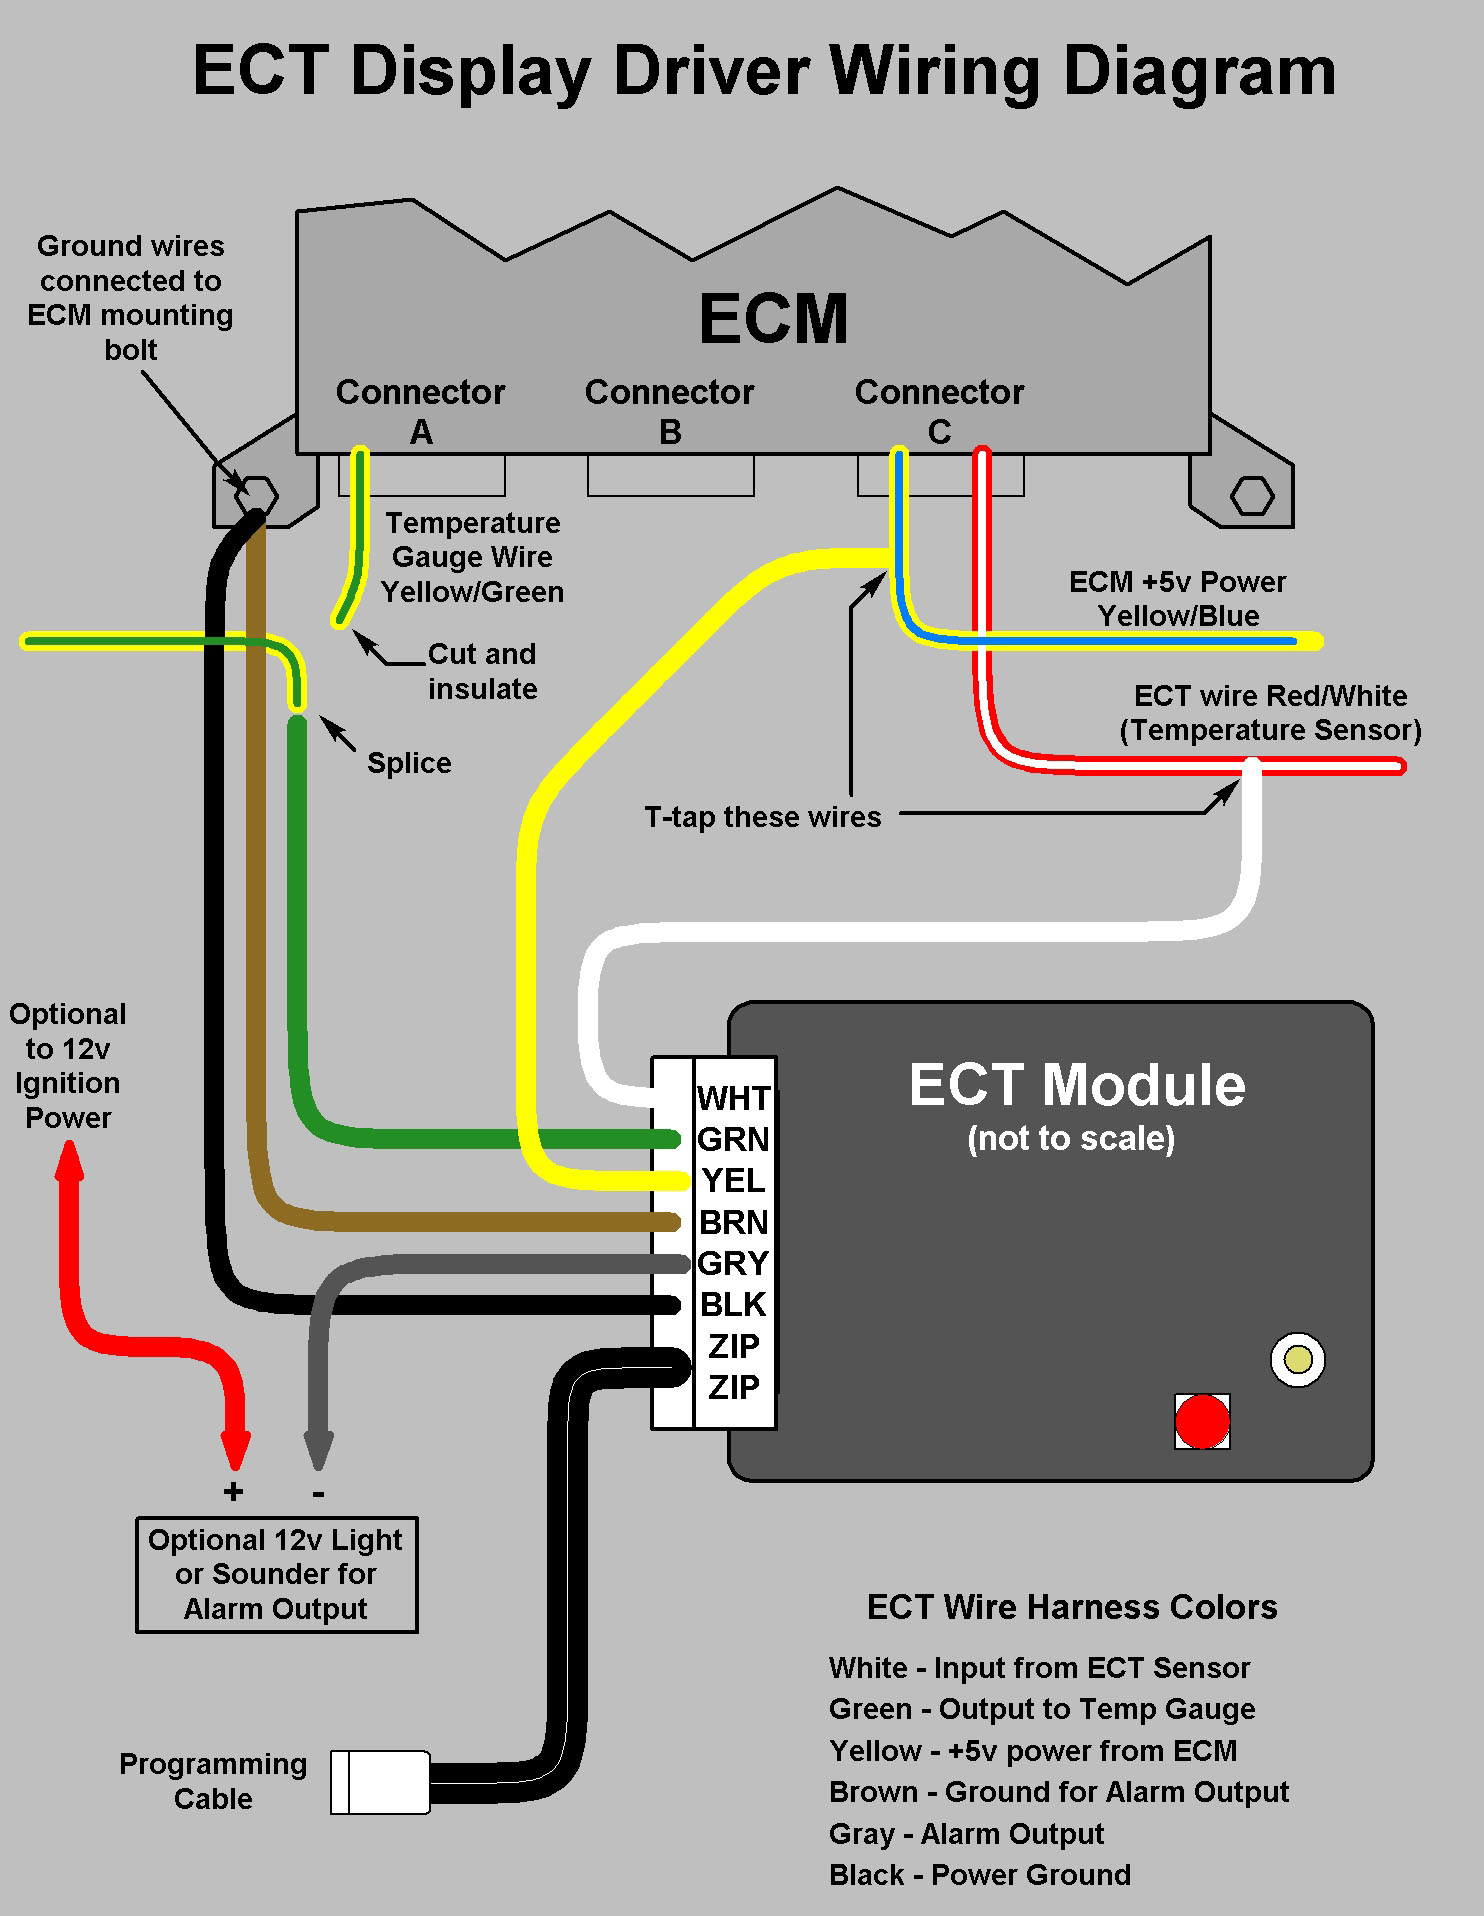 honda crv ecu wiring diagram draw diagrams modifry 39s s2000 ect installation